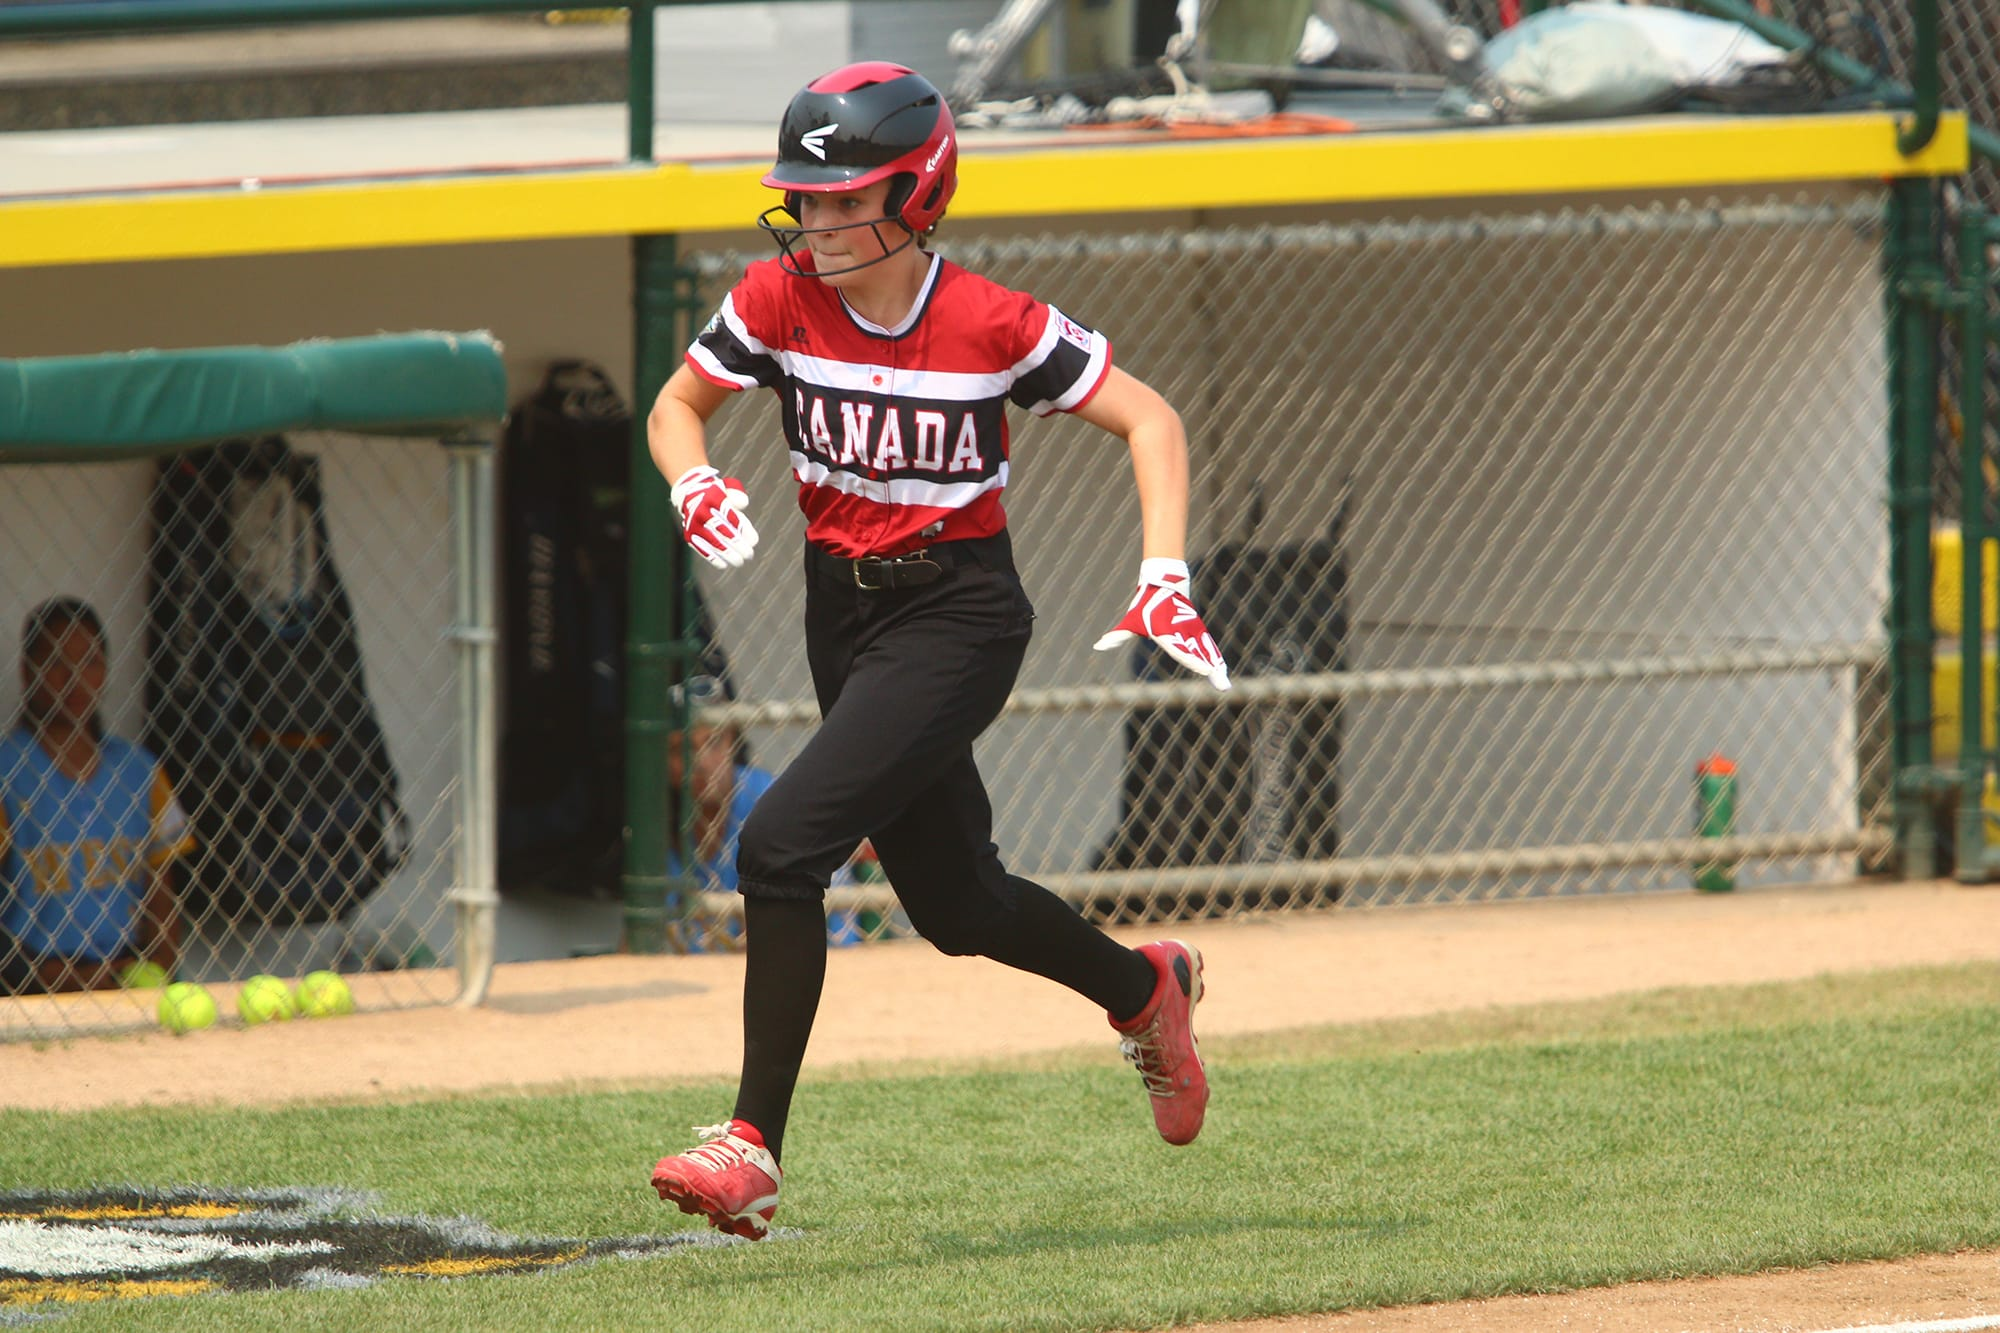 softball player running home